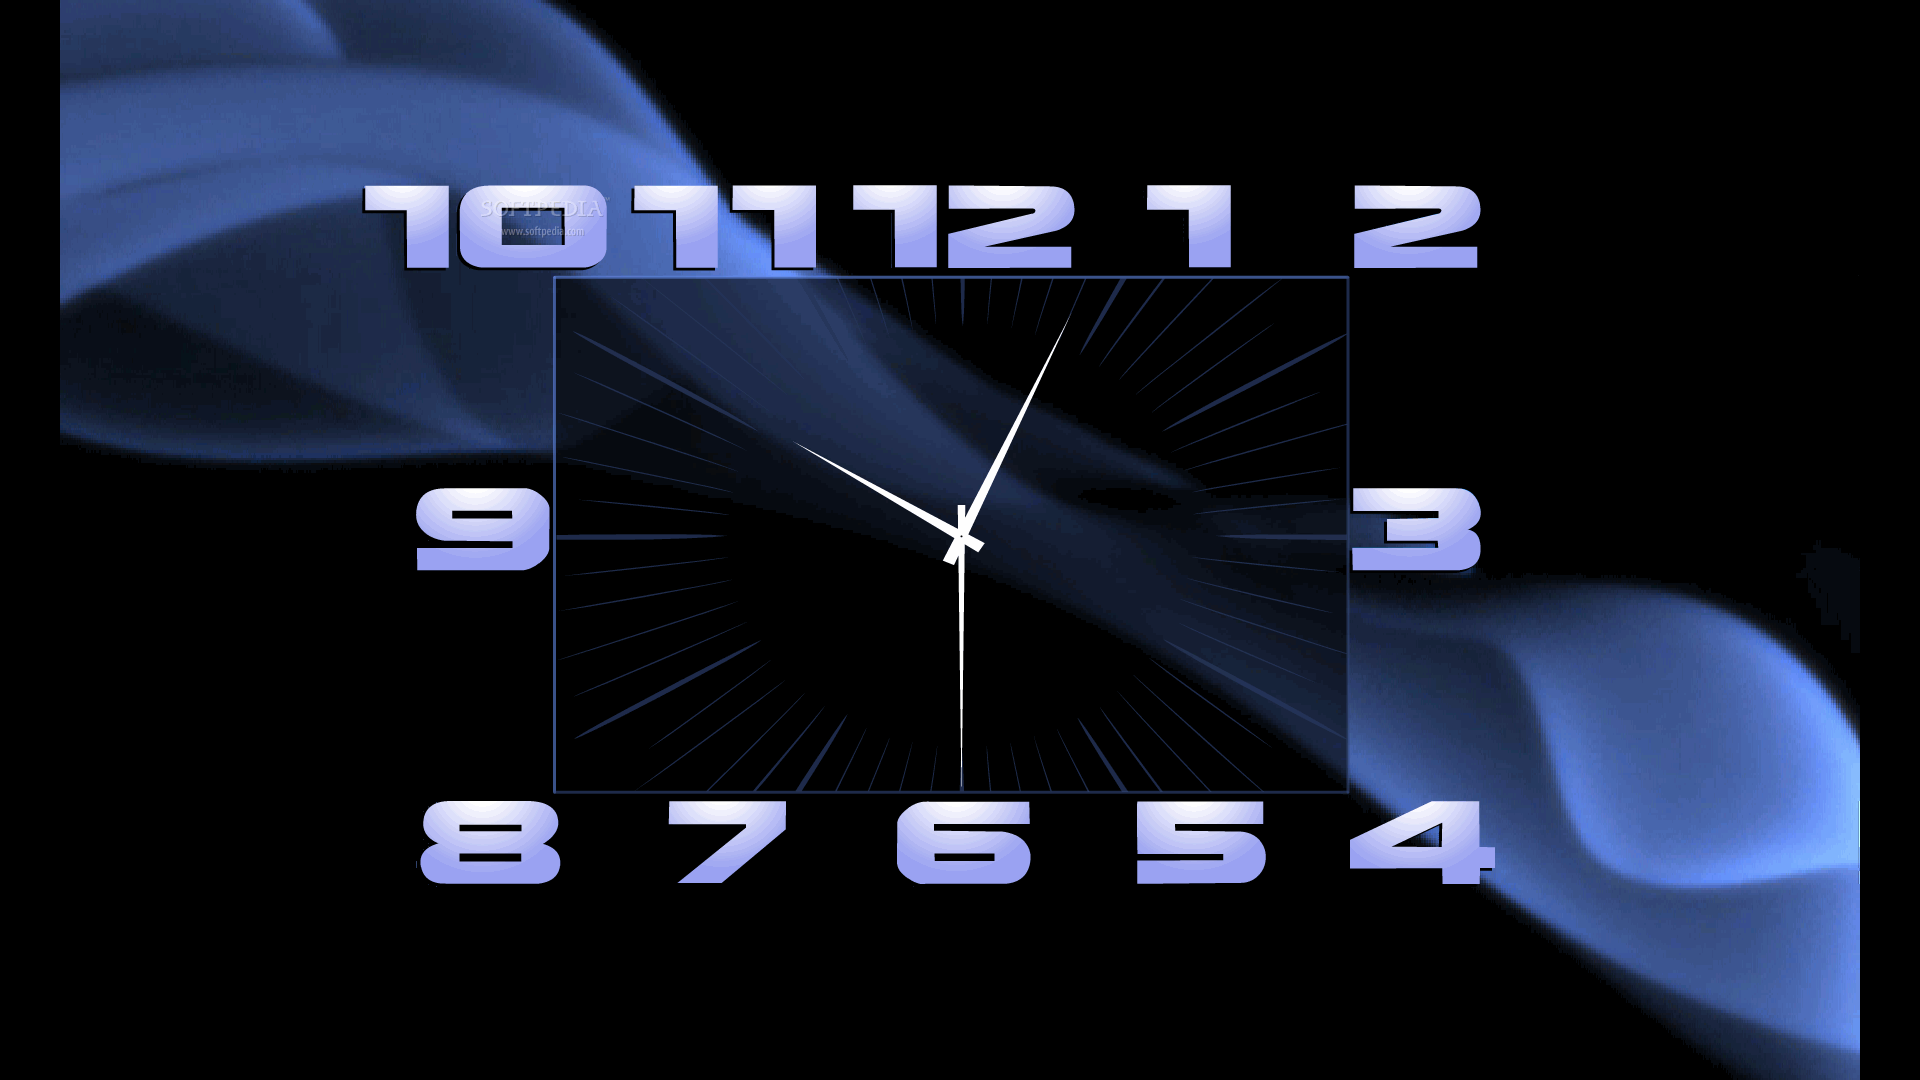 an analog clock with big readable numbers and a background animation 1920x1080